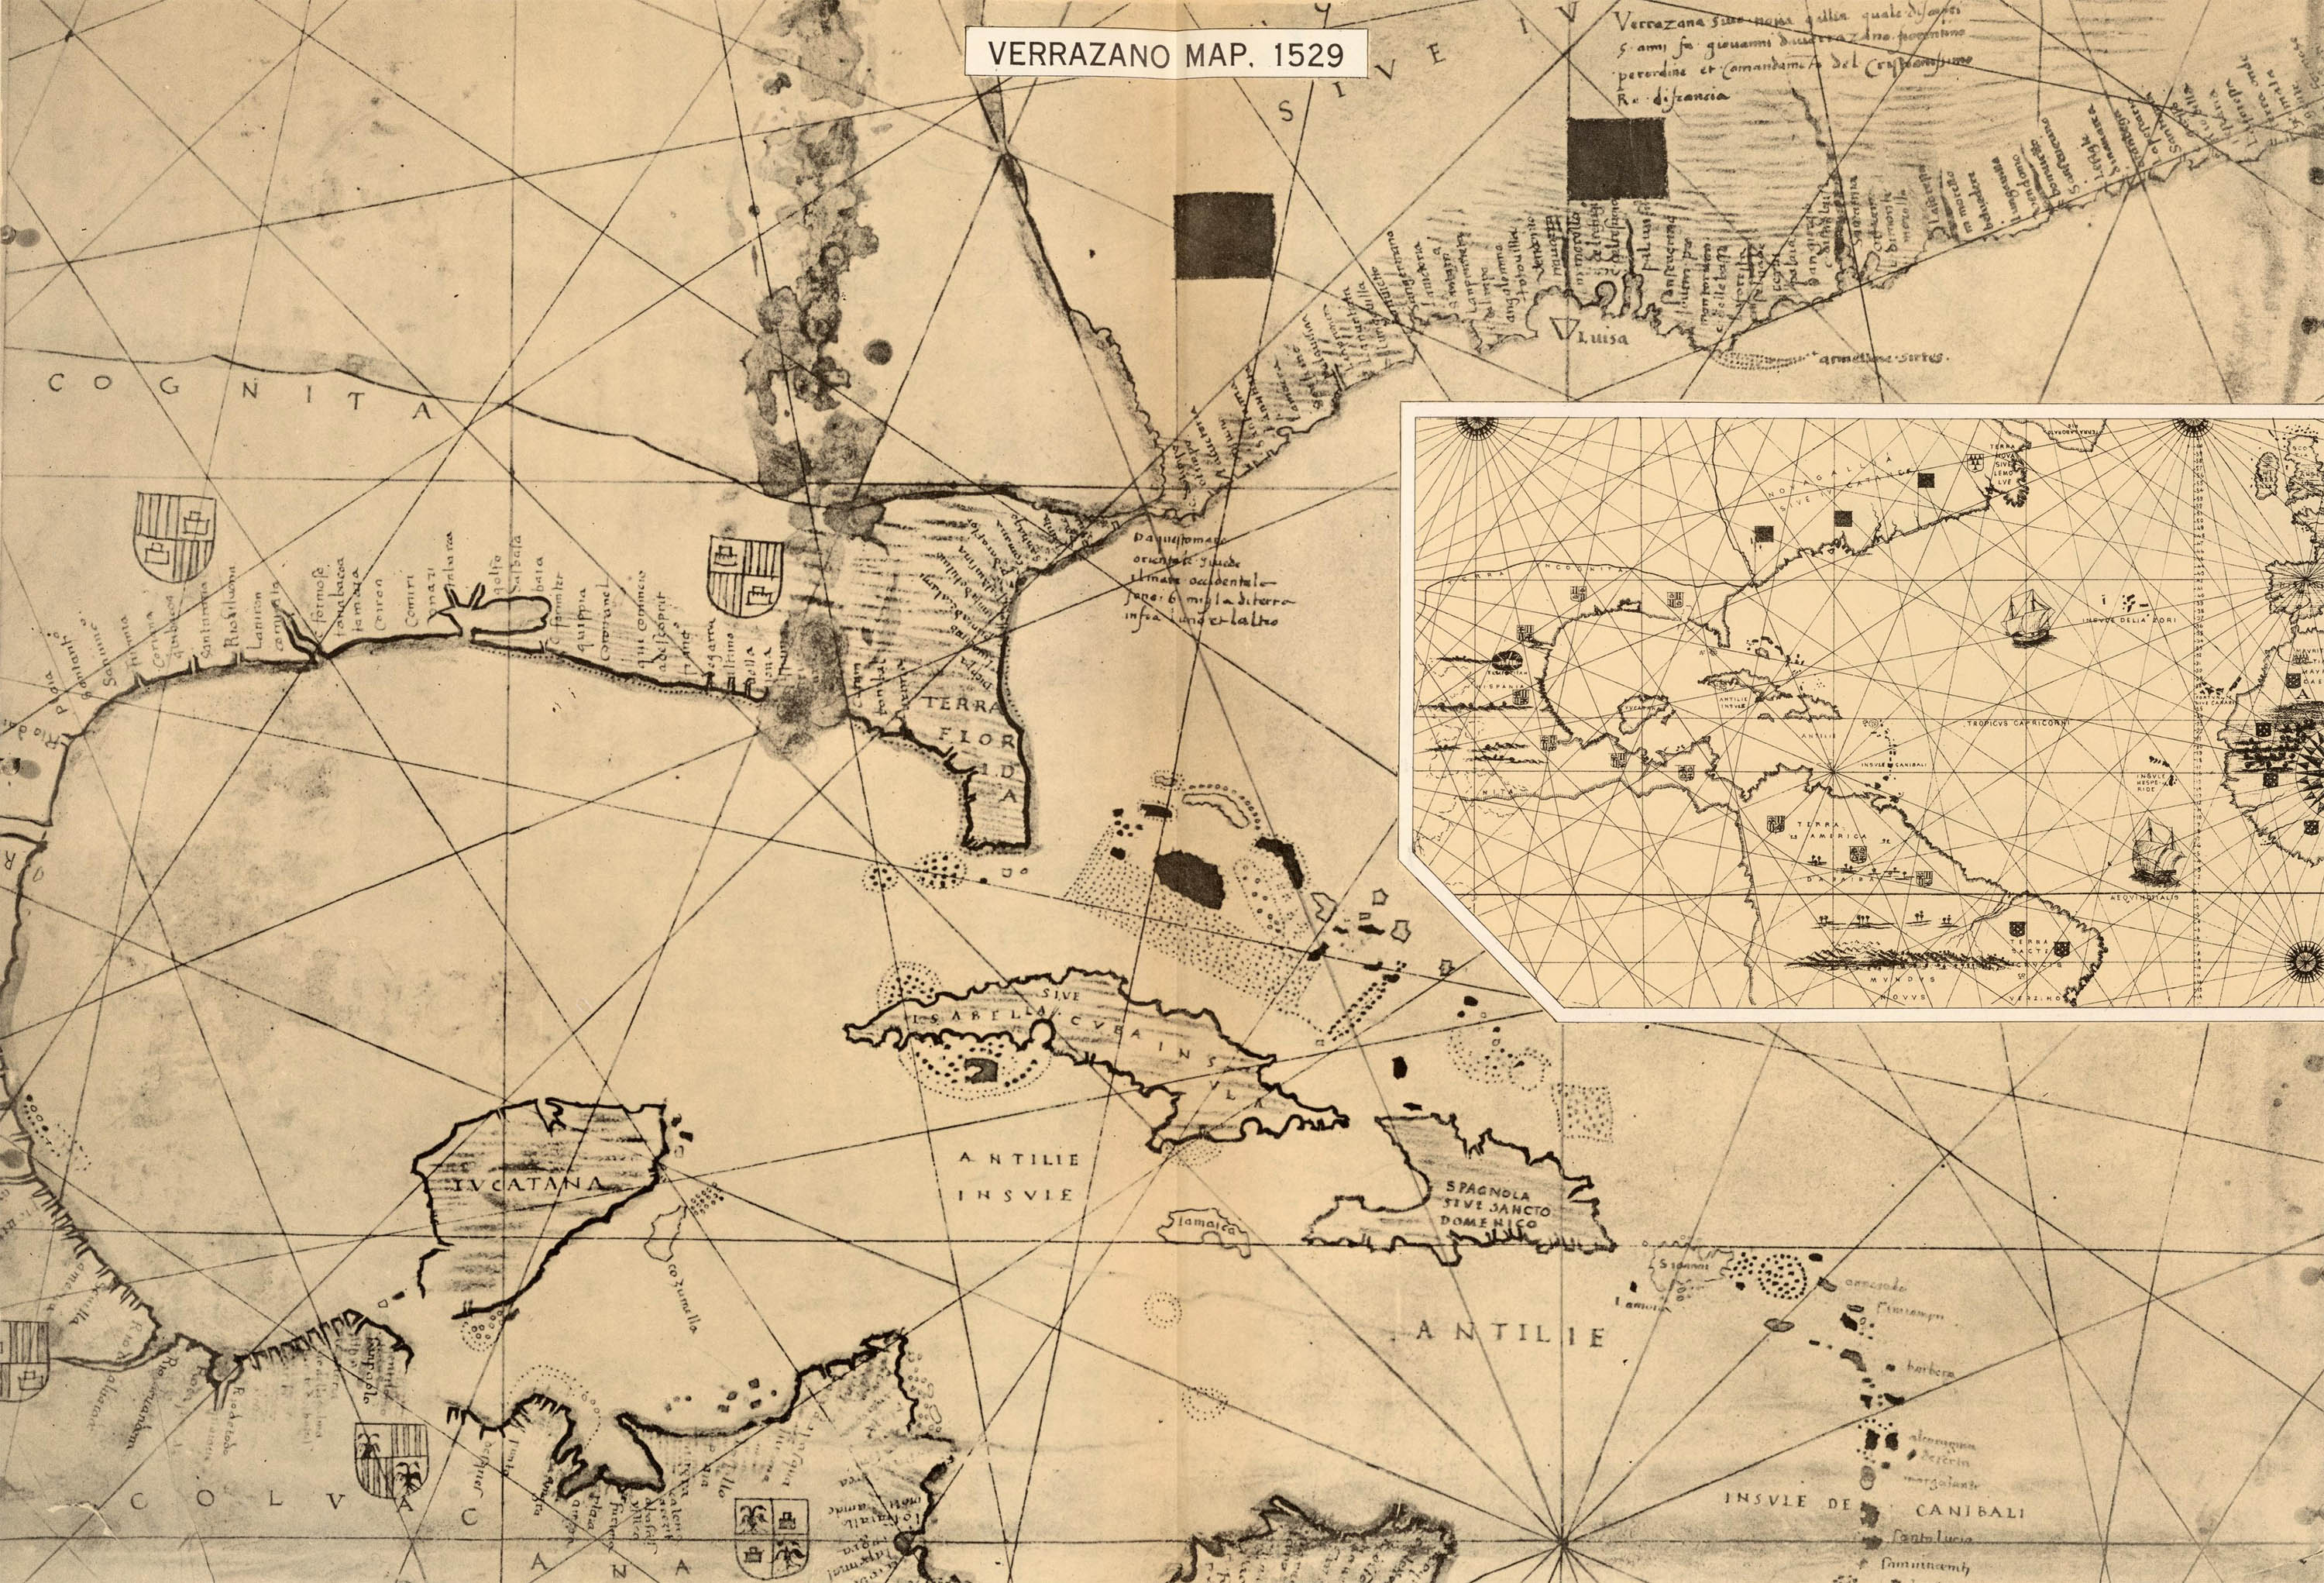 File:Girolamo de Verrazzano's 1529 map of the East Coast of America.jpg